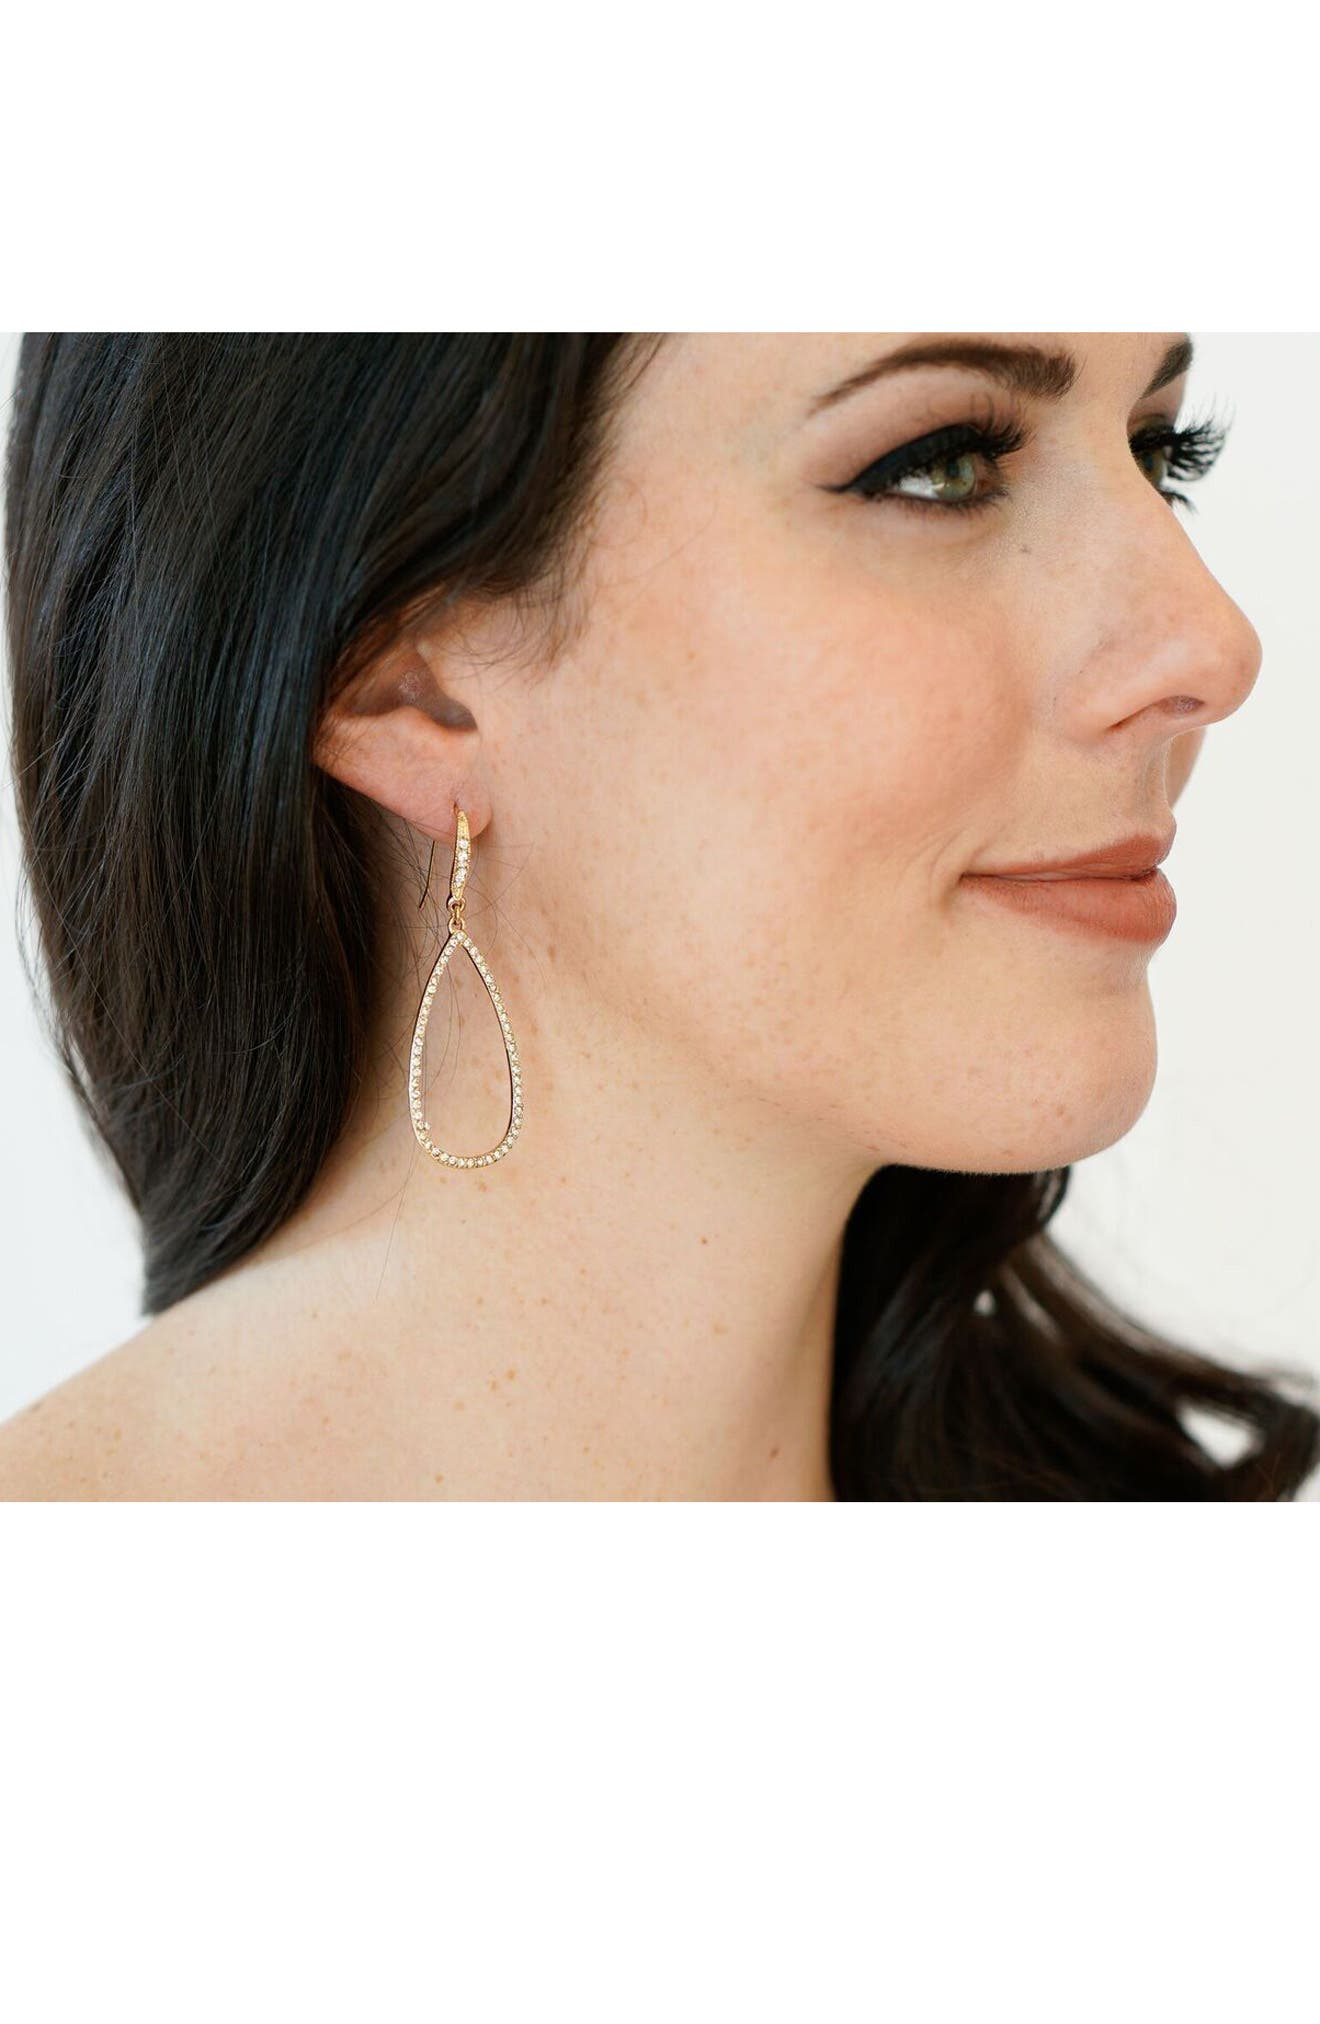 Crystal Teardrop Earrings,                             Alternate thumbnail 3, color,                             710